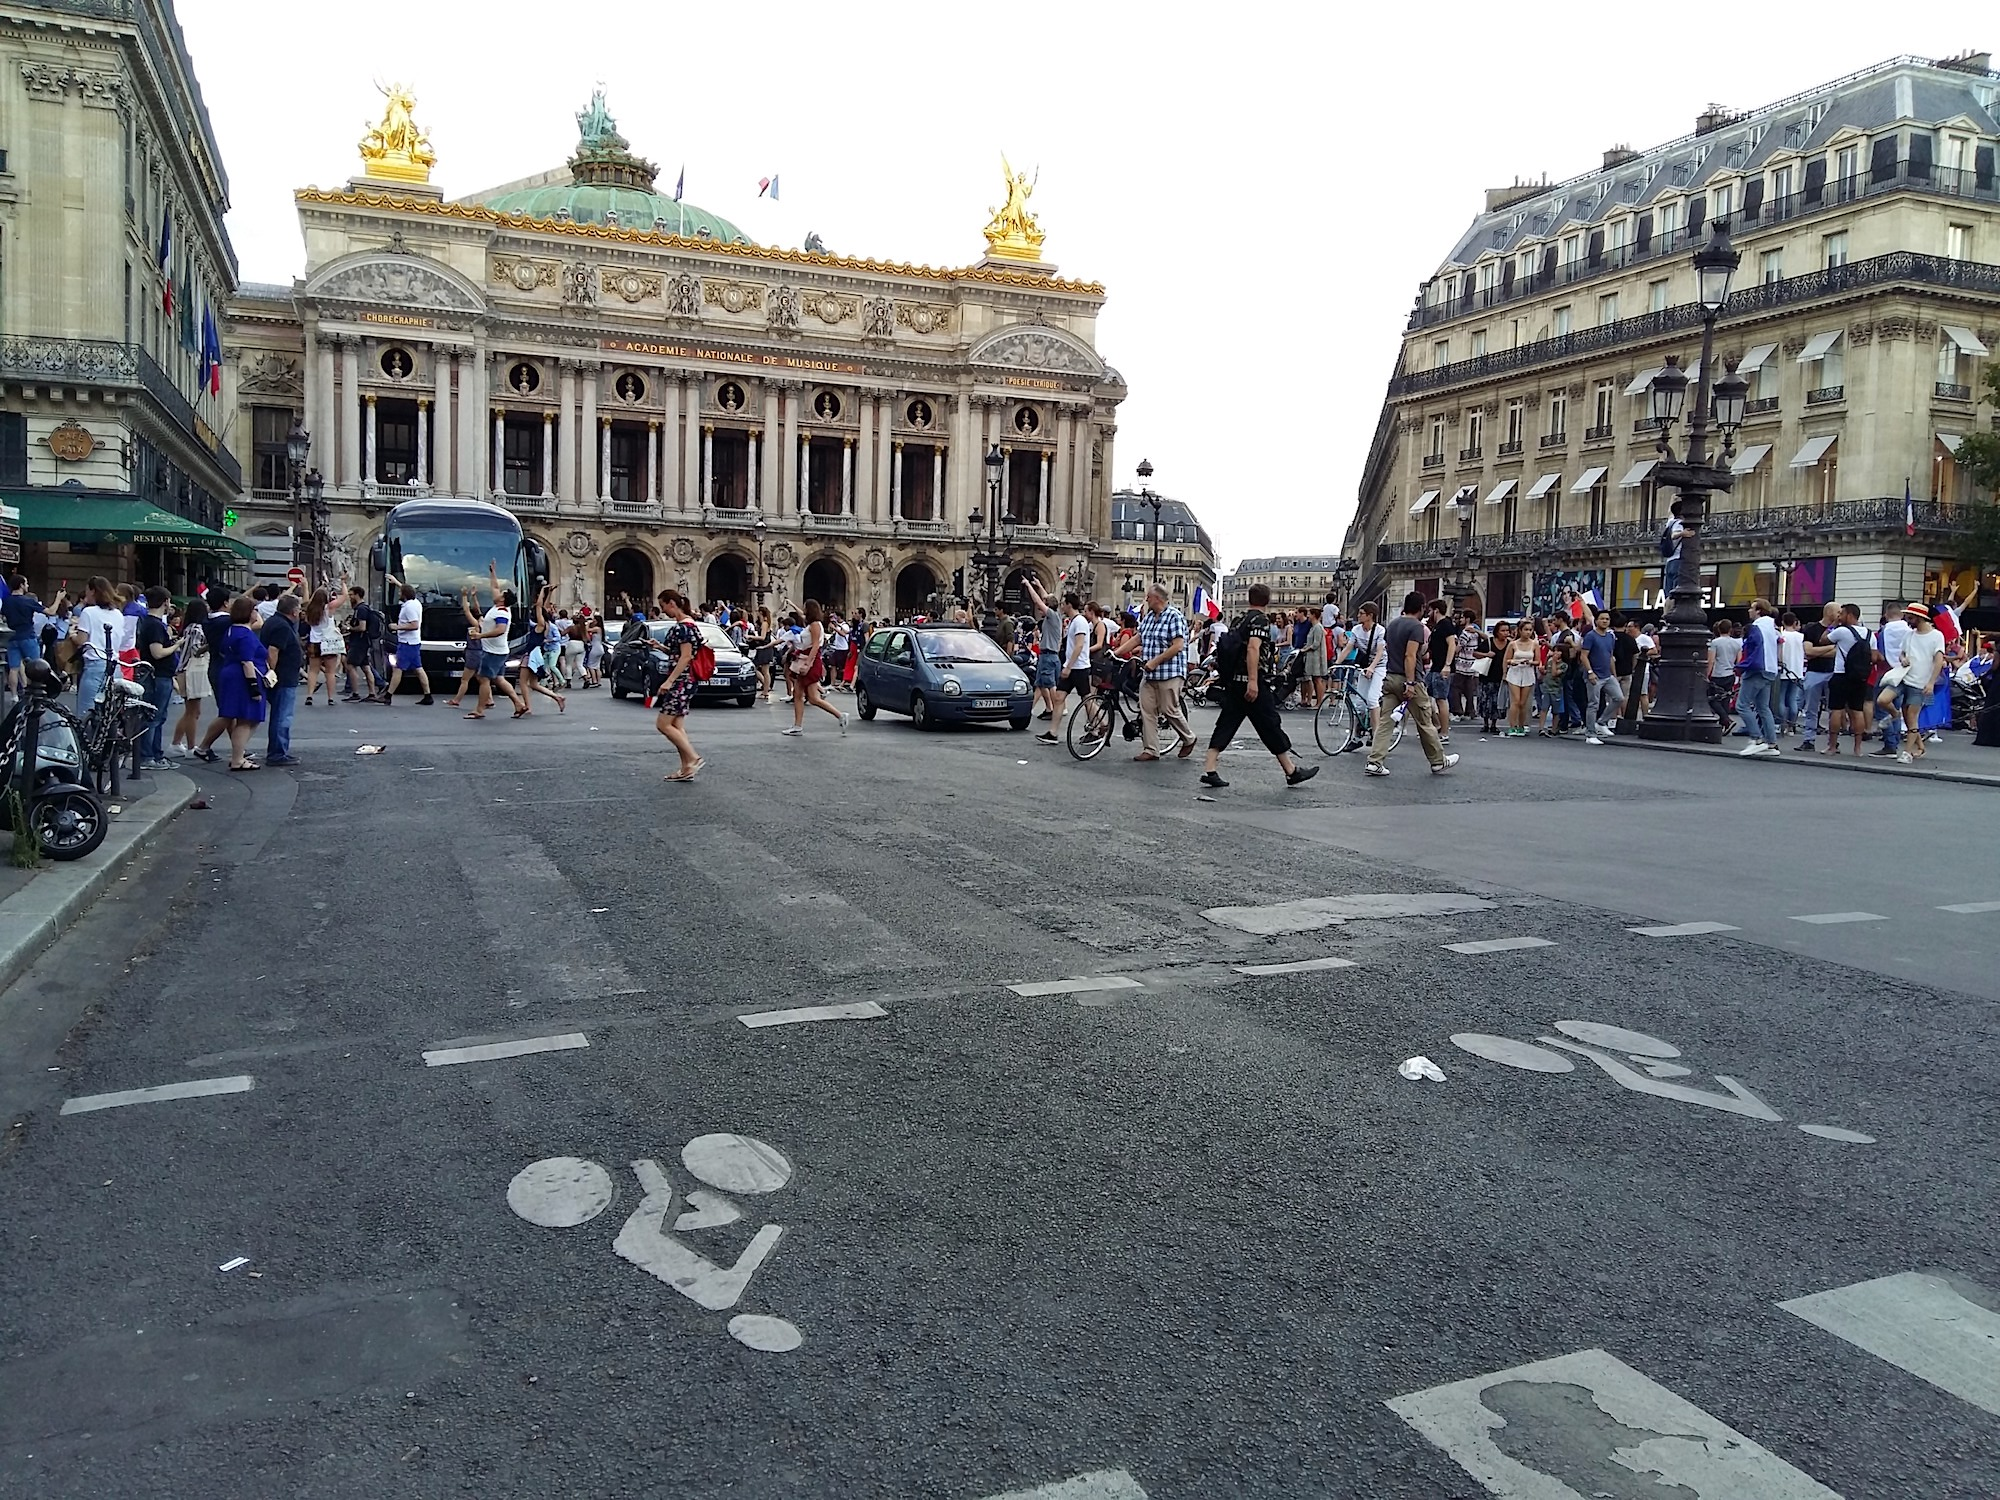 People celebrating in Paris when France won the World Cup in 2018 in front of the opera house.